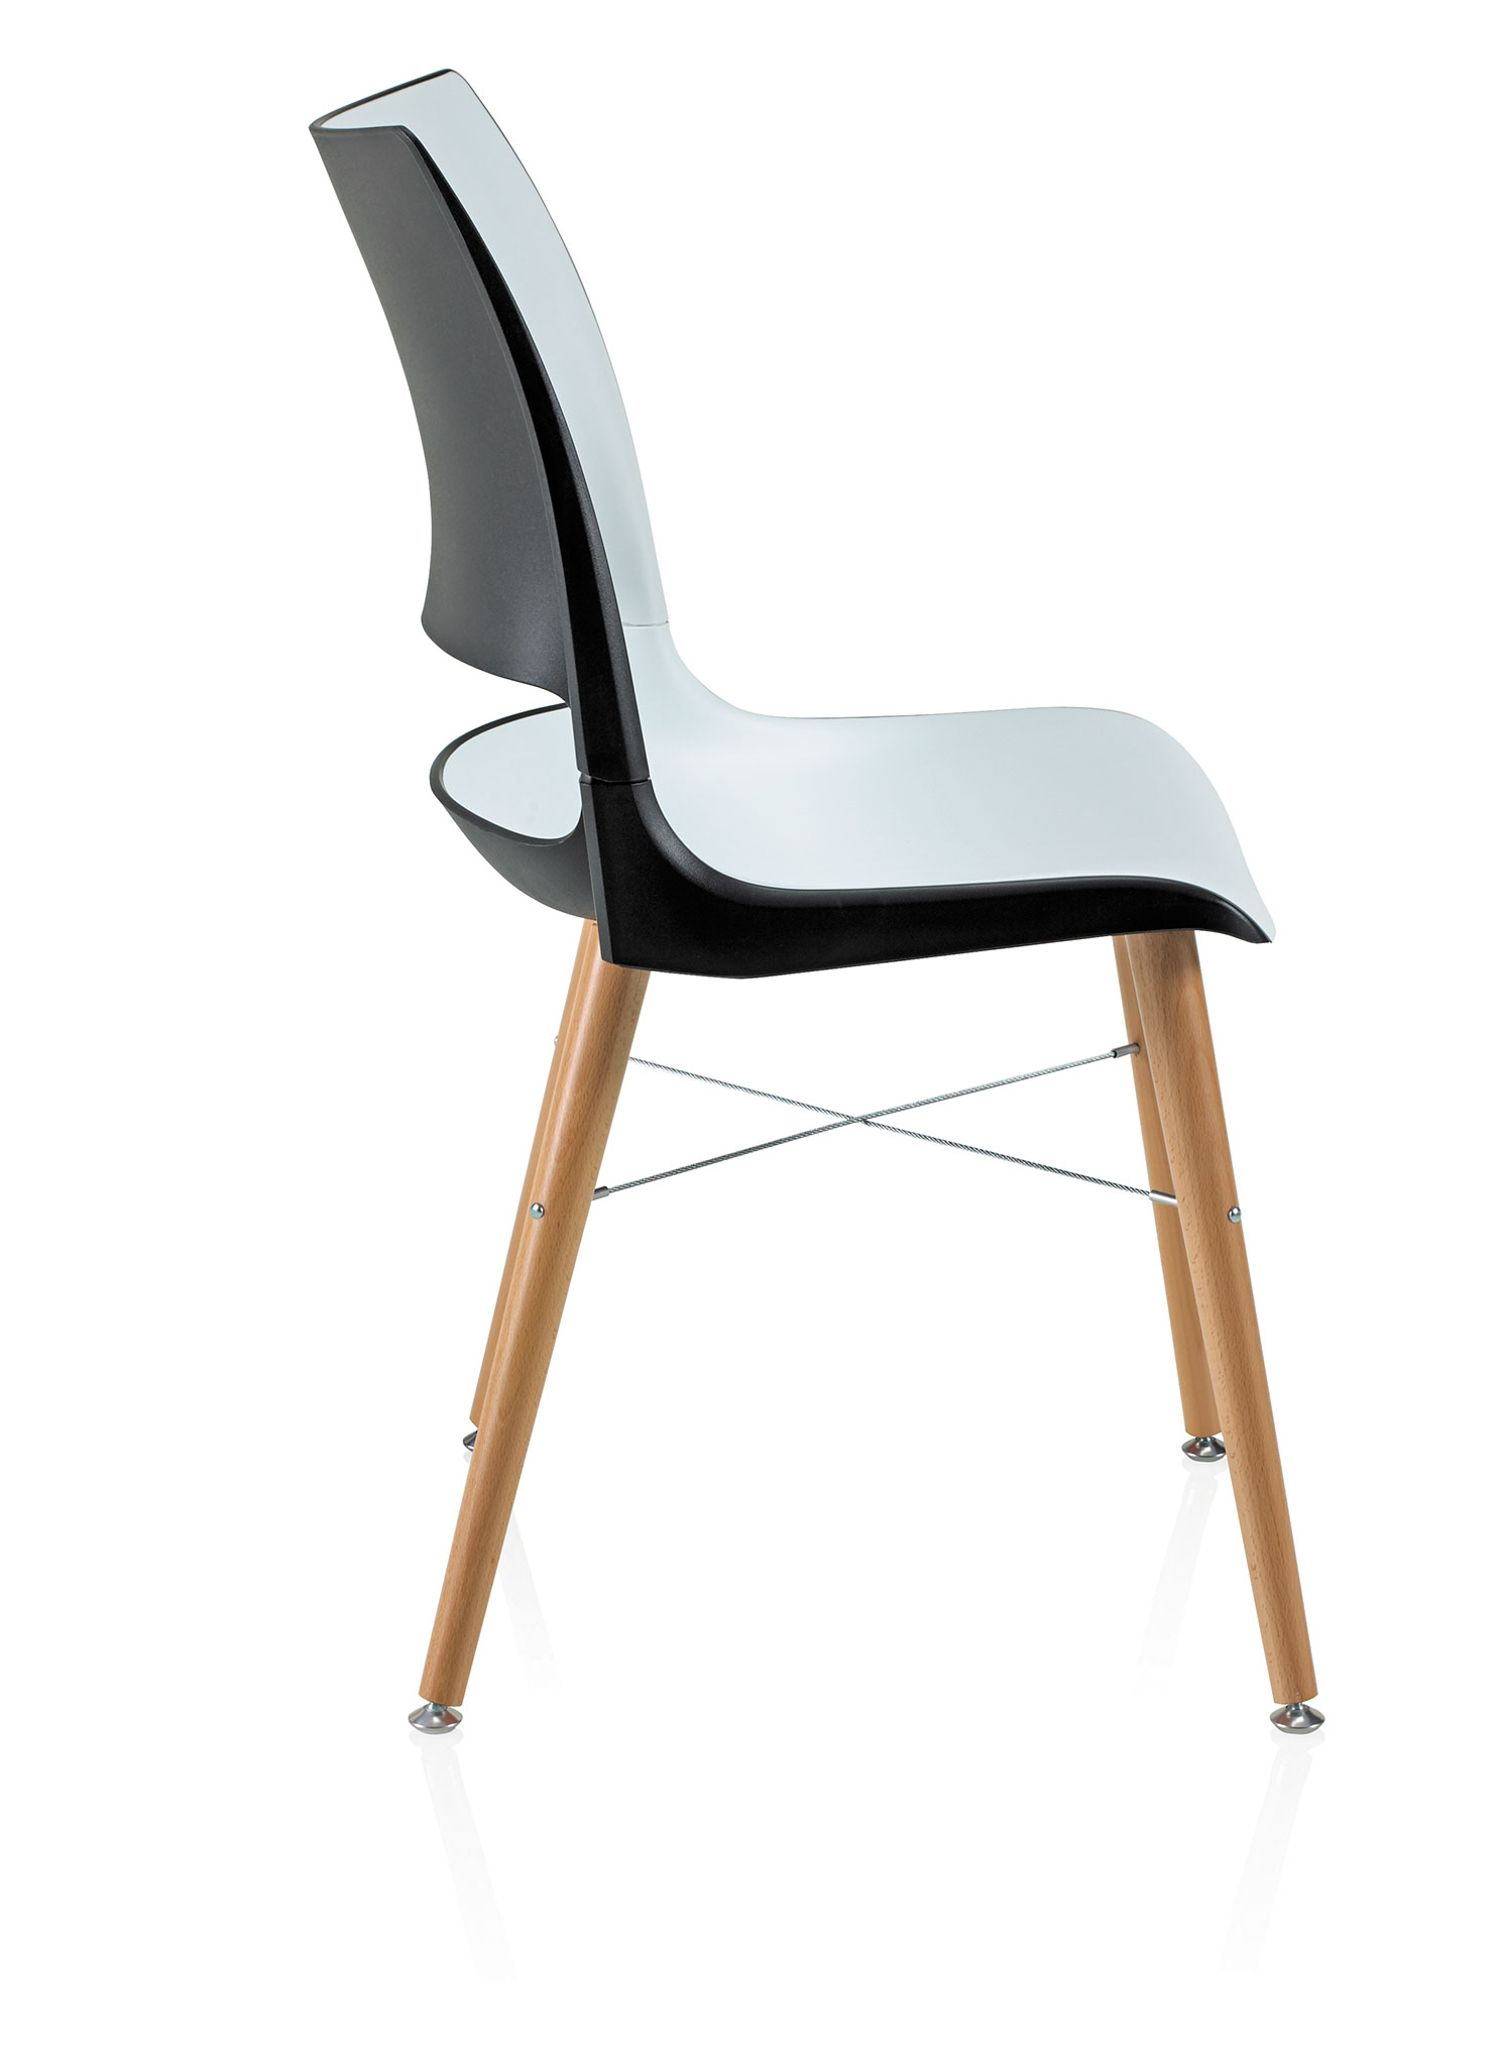 doni chair side view